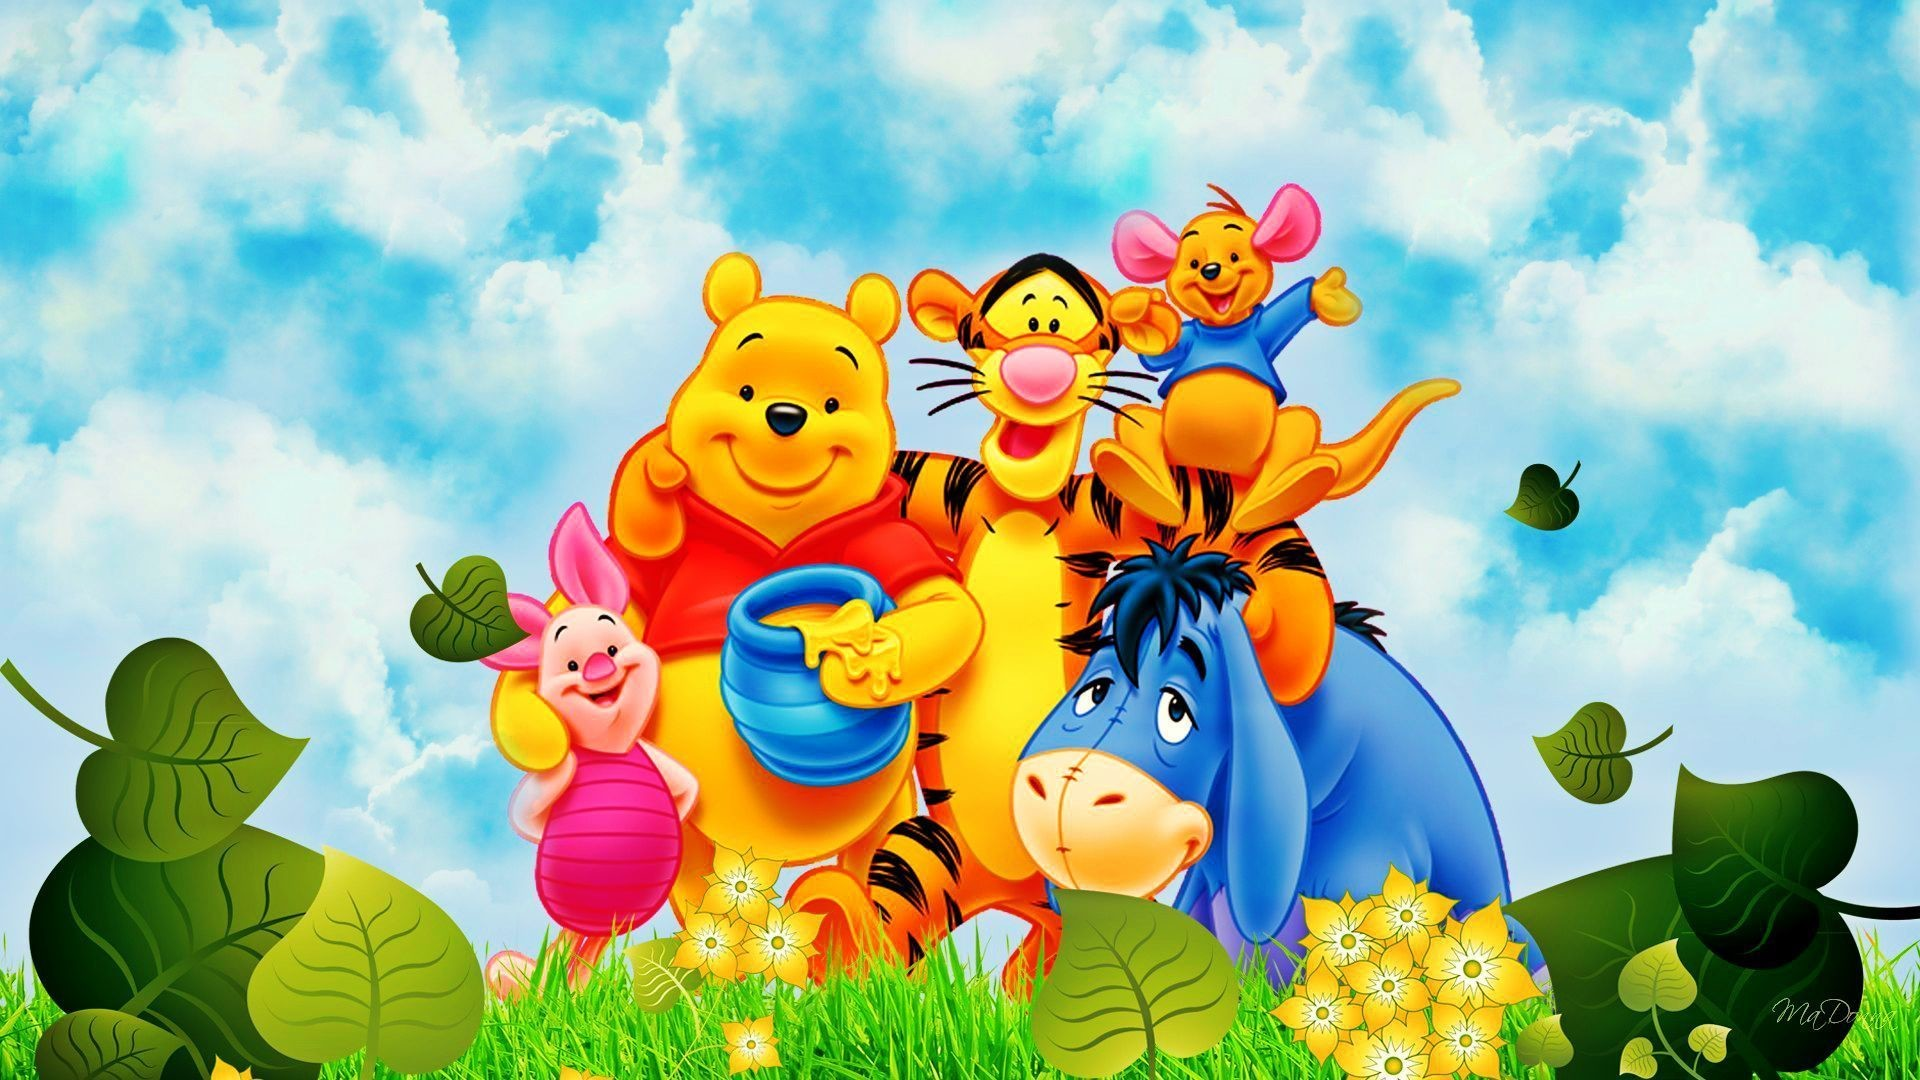 Disney Winnie The Pooh Wallpapers Group (68+)